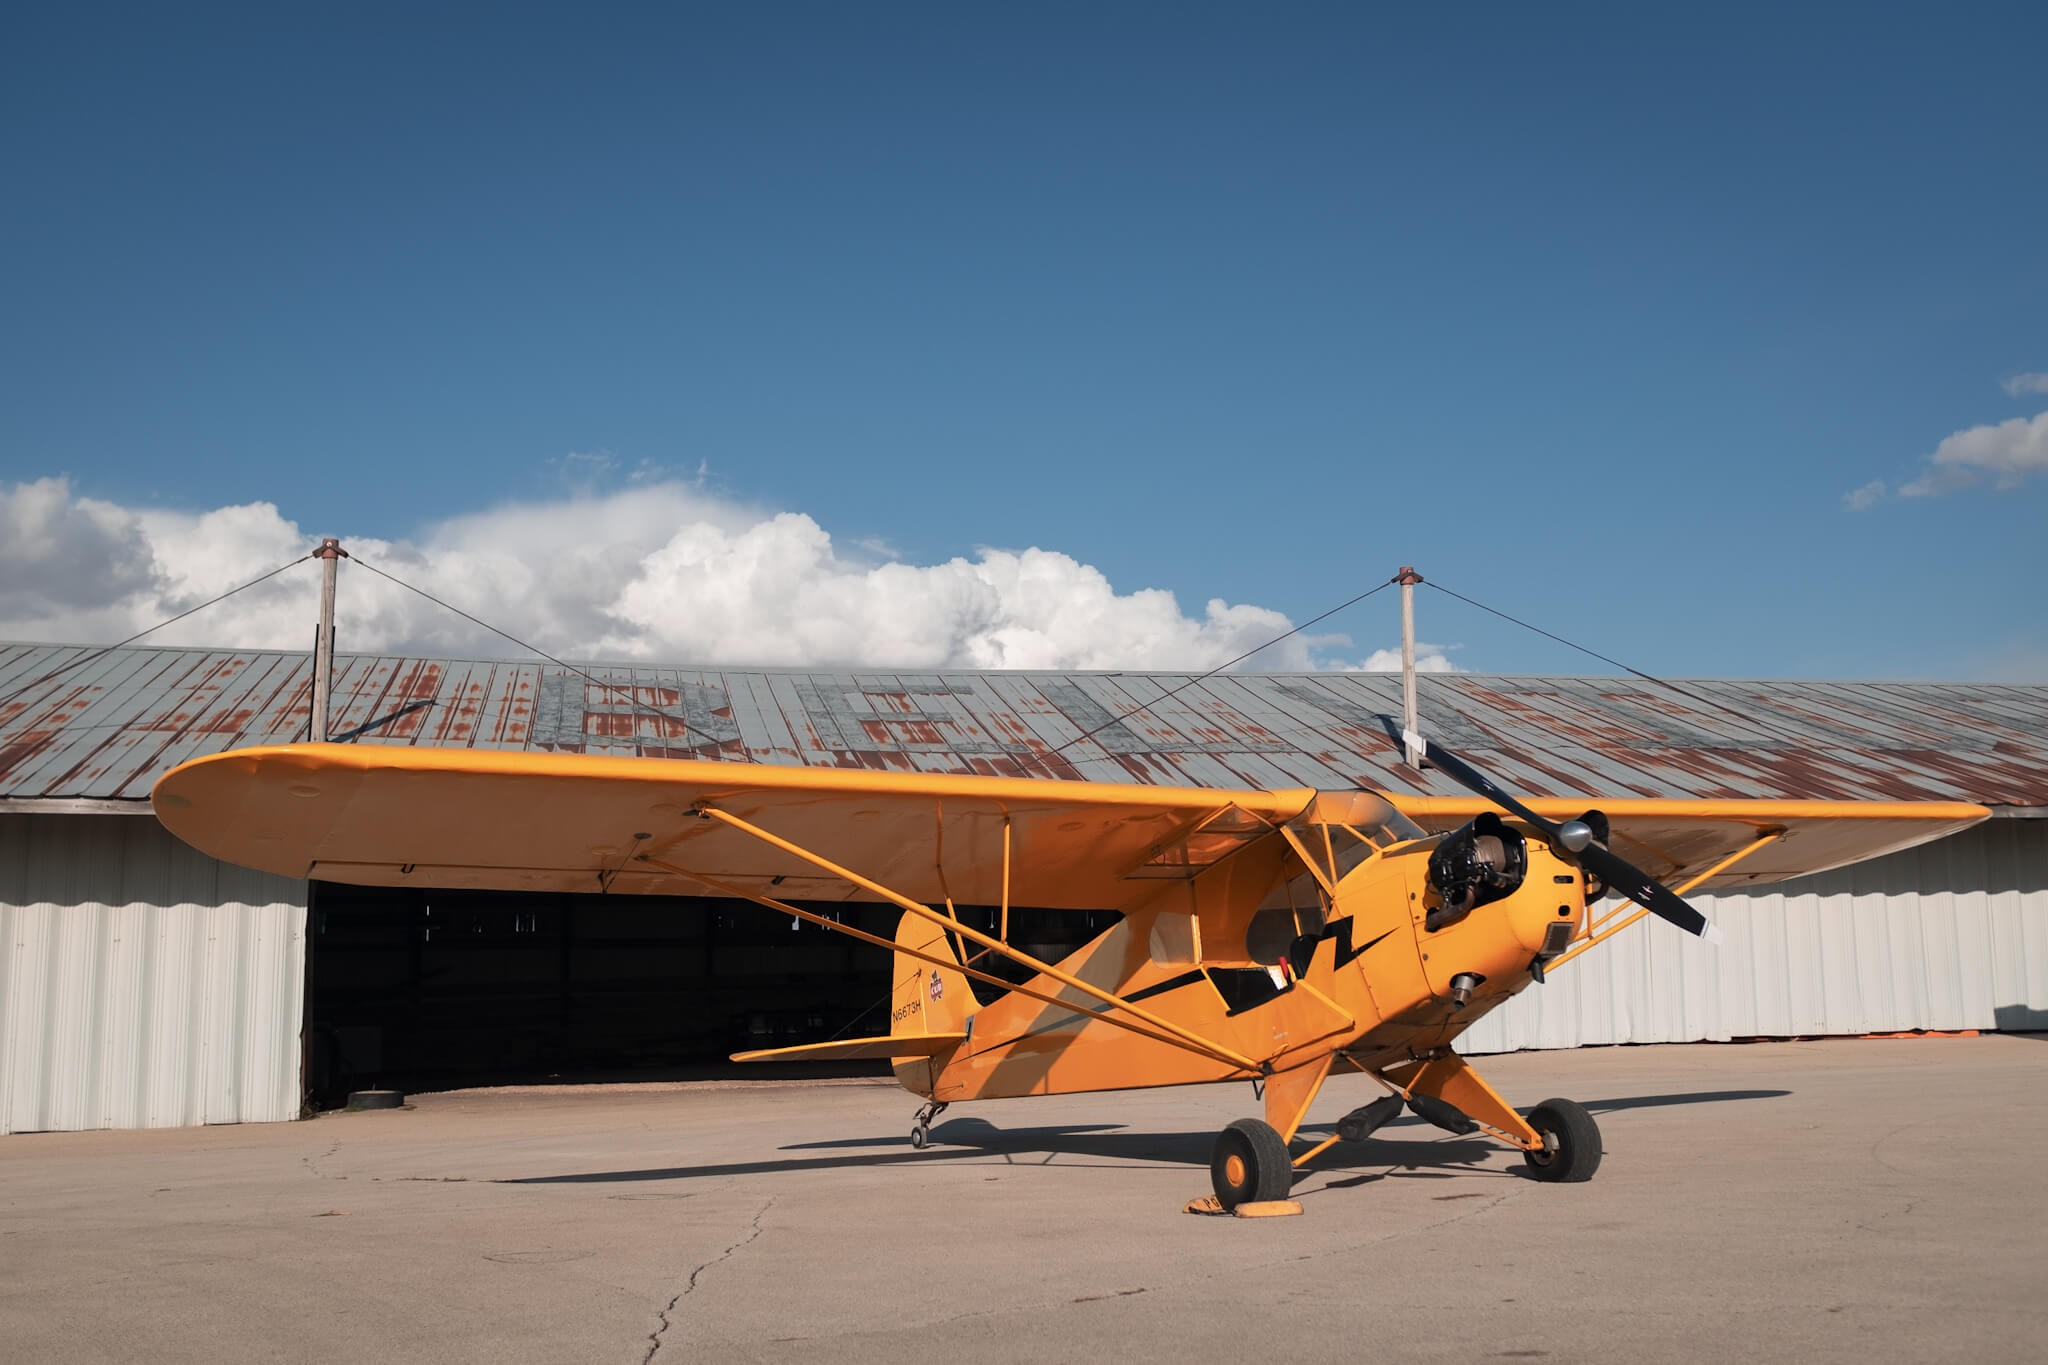 Yellow Piper J-3 Cub (N6673H) parked outside hangar at Poplar Grove Airport (C77) on sunny day